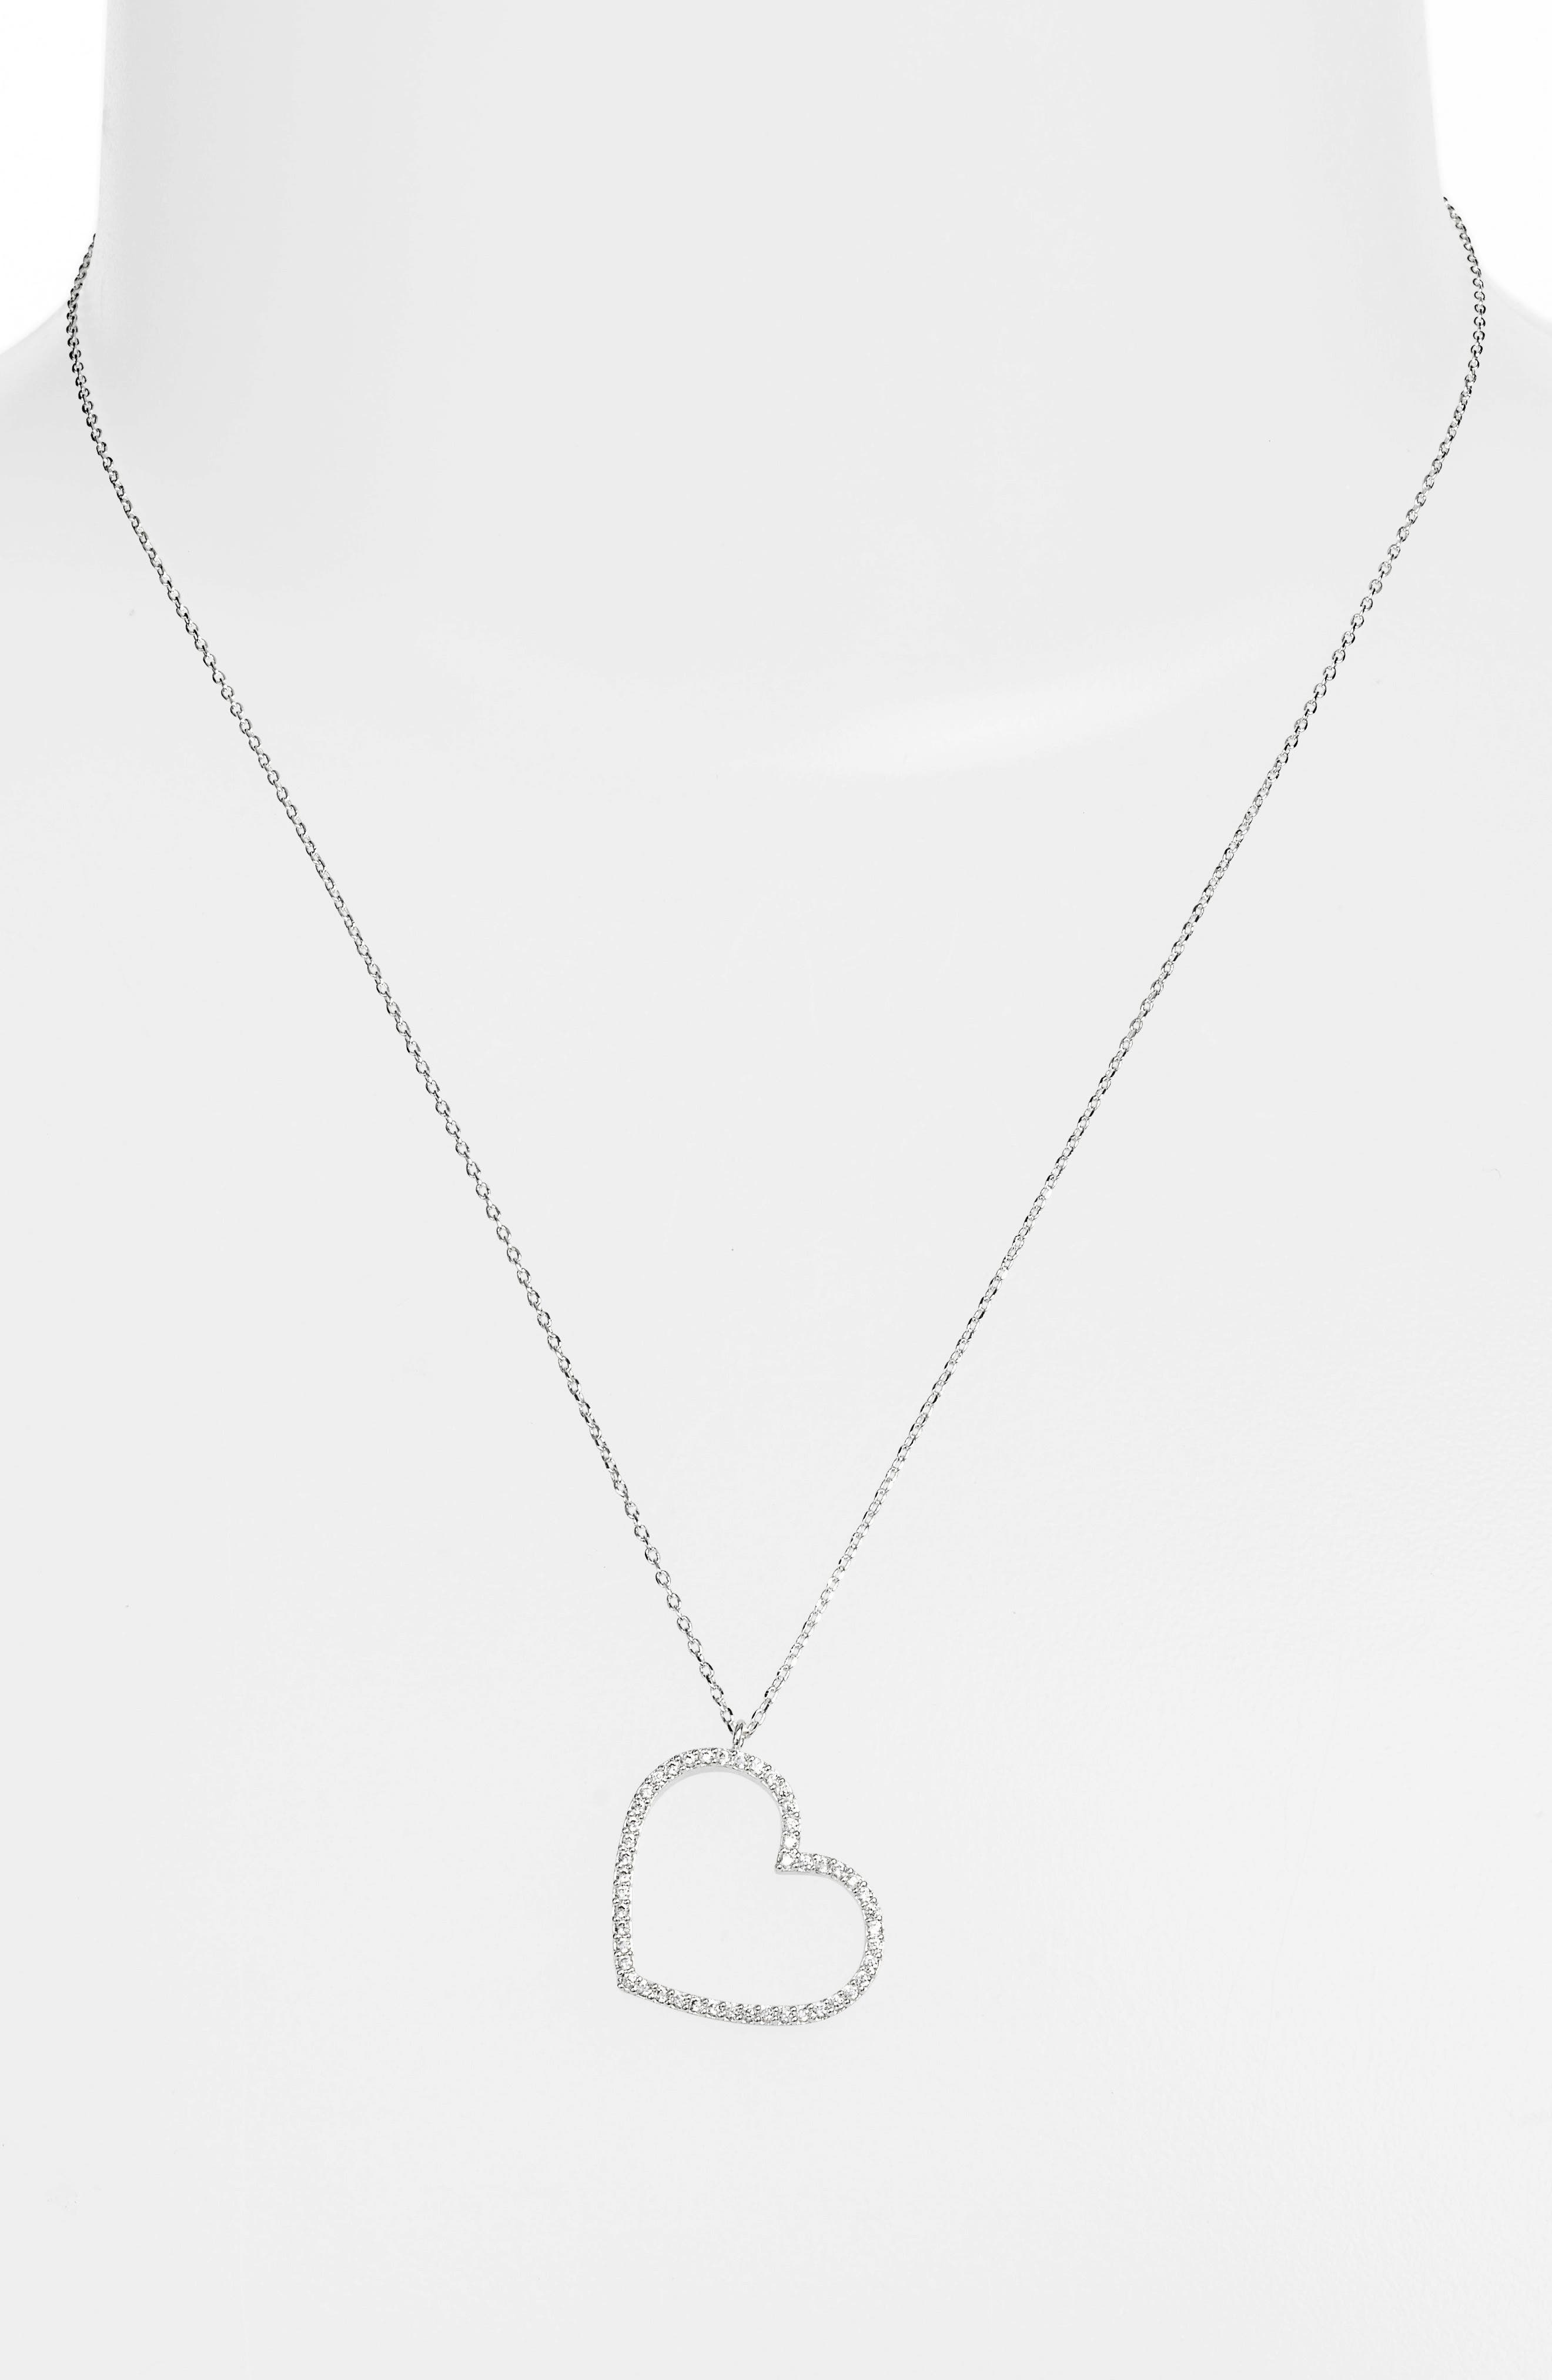 Cubic Zirconia Heart Necklace,                             Alternate thumbnail 2, color,                             040